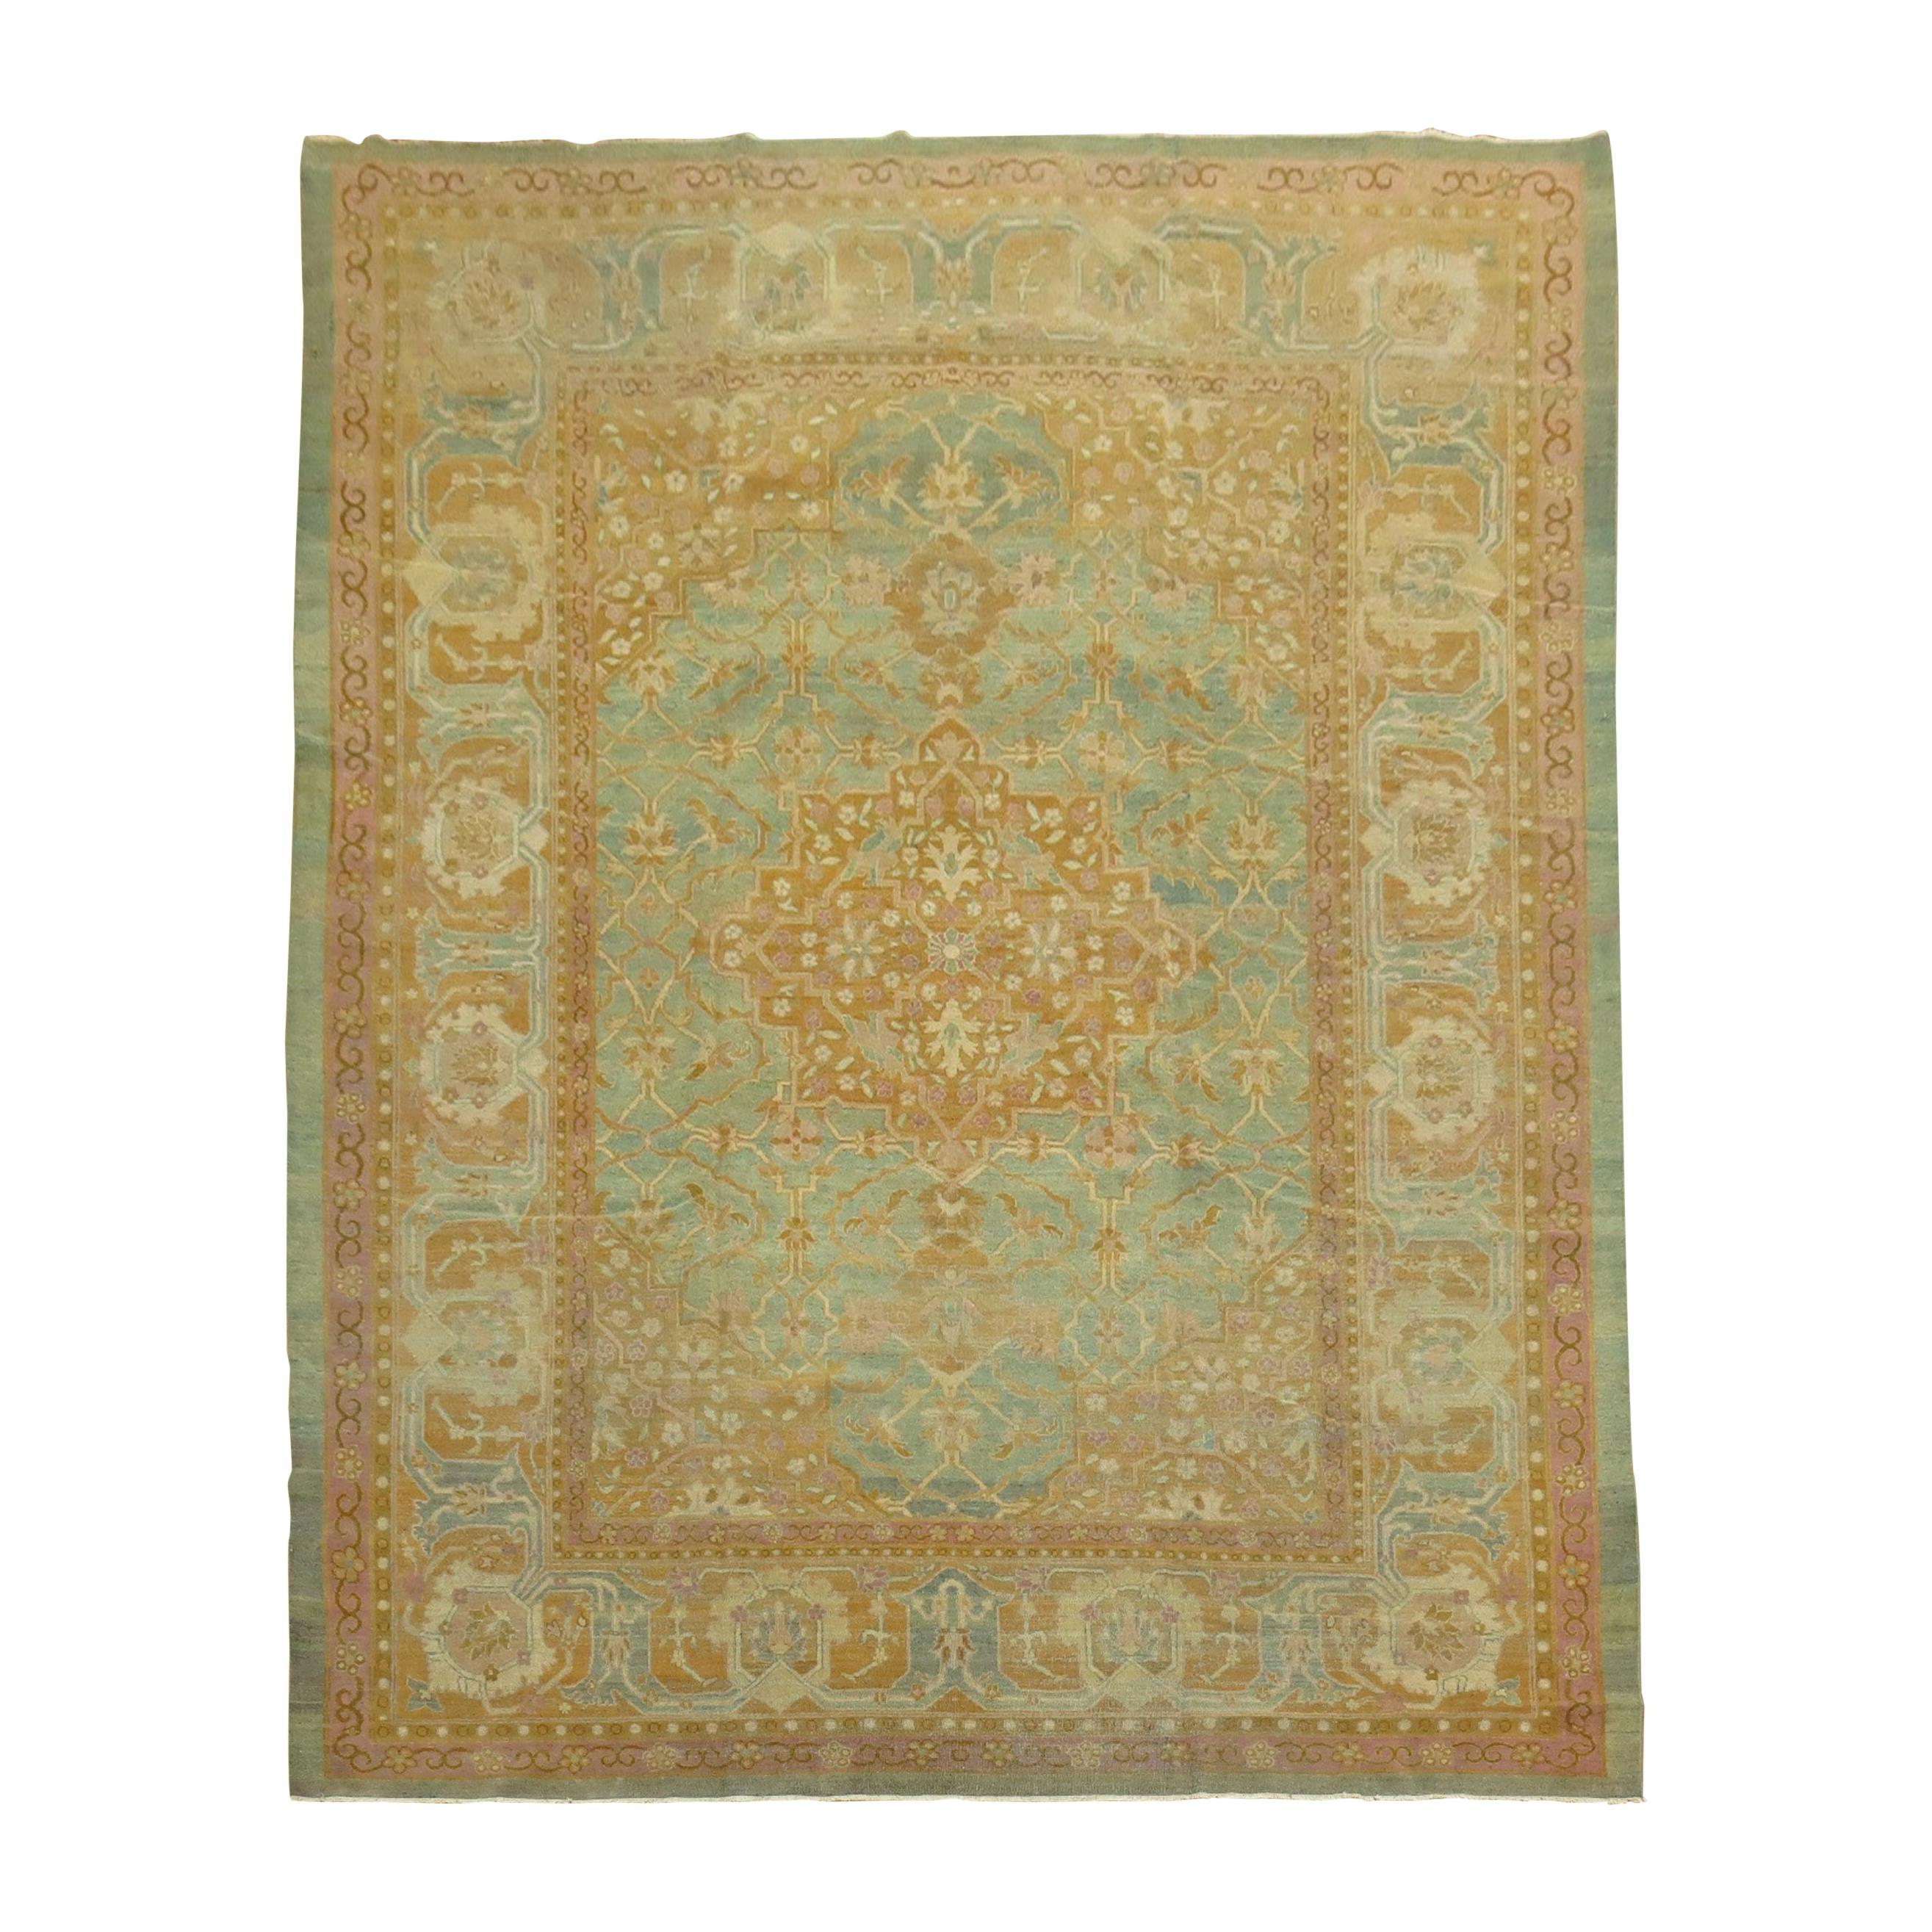 Turquoise Pink Antique Indian Amritsar Room Rug